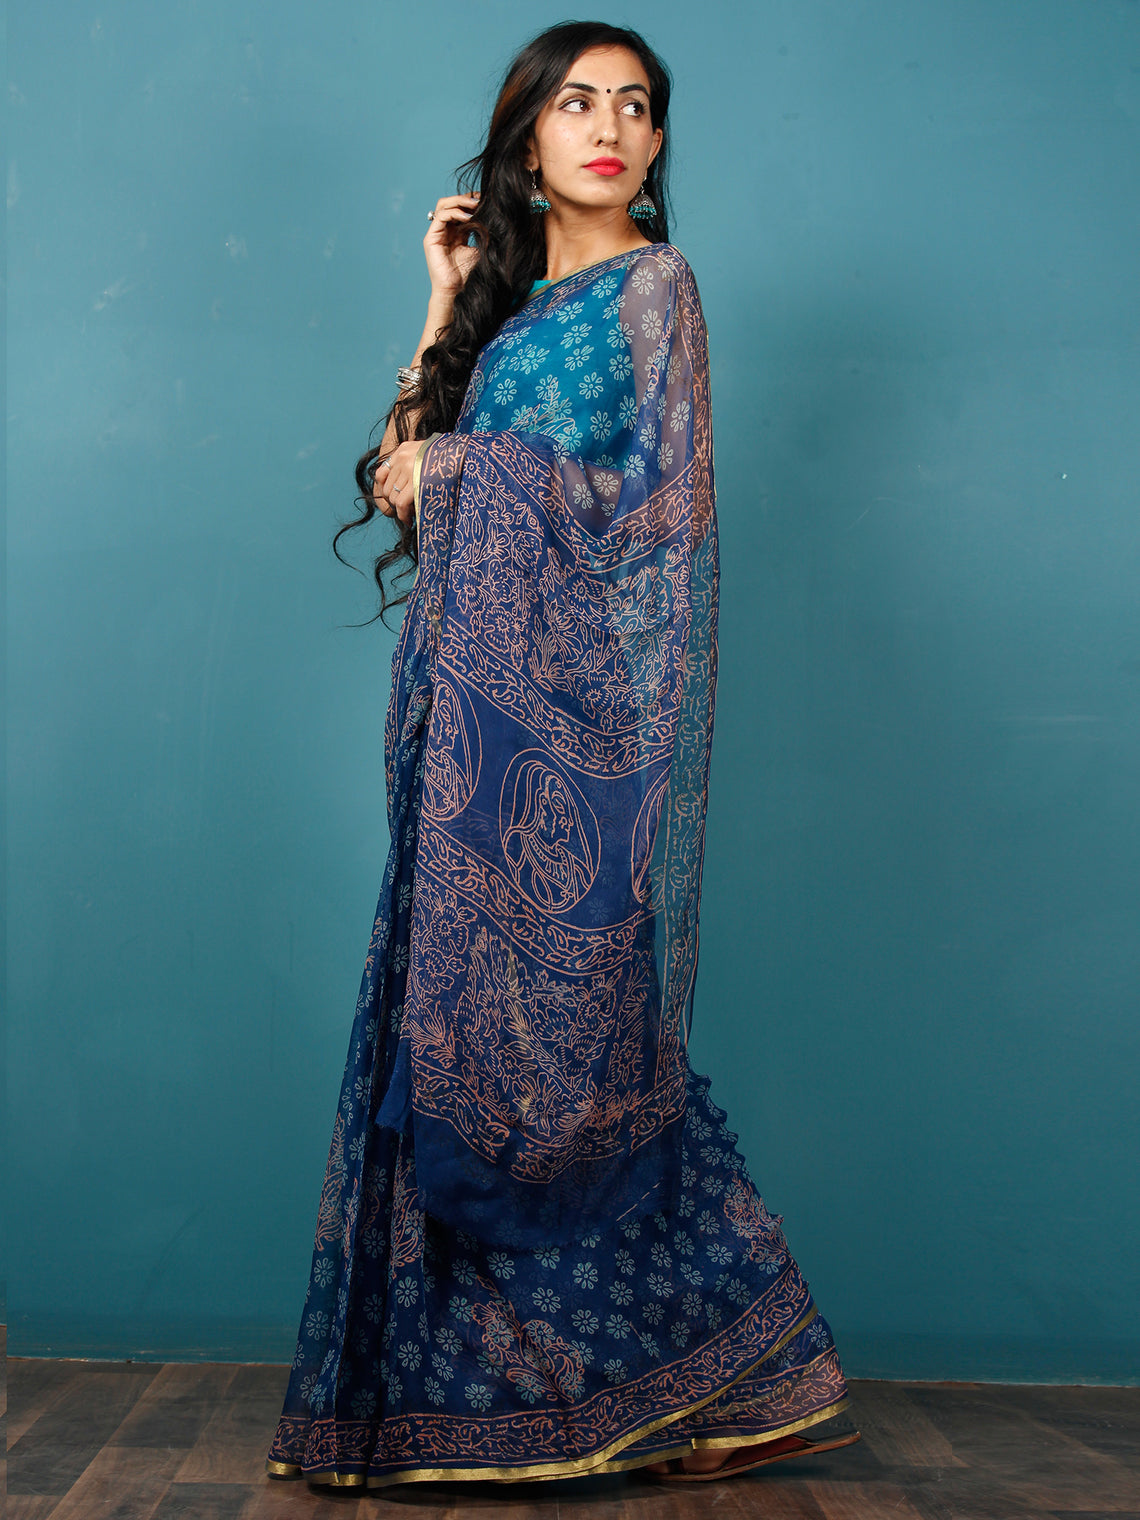 Indigo Sky Blue Coral Hand Block Printed Chiffon Saree with Zari Border - S031702818